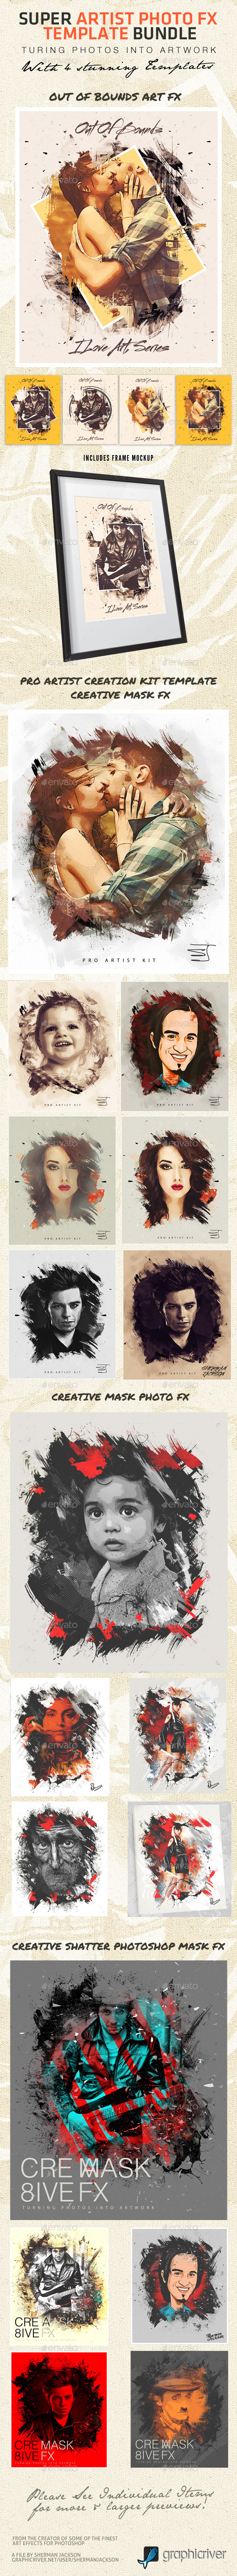 Super Artist Photo FX Template Bundle - Artistic Photo Templates